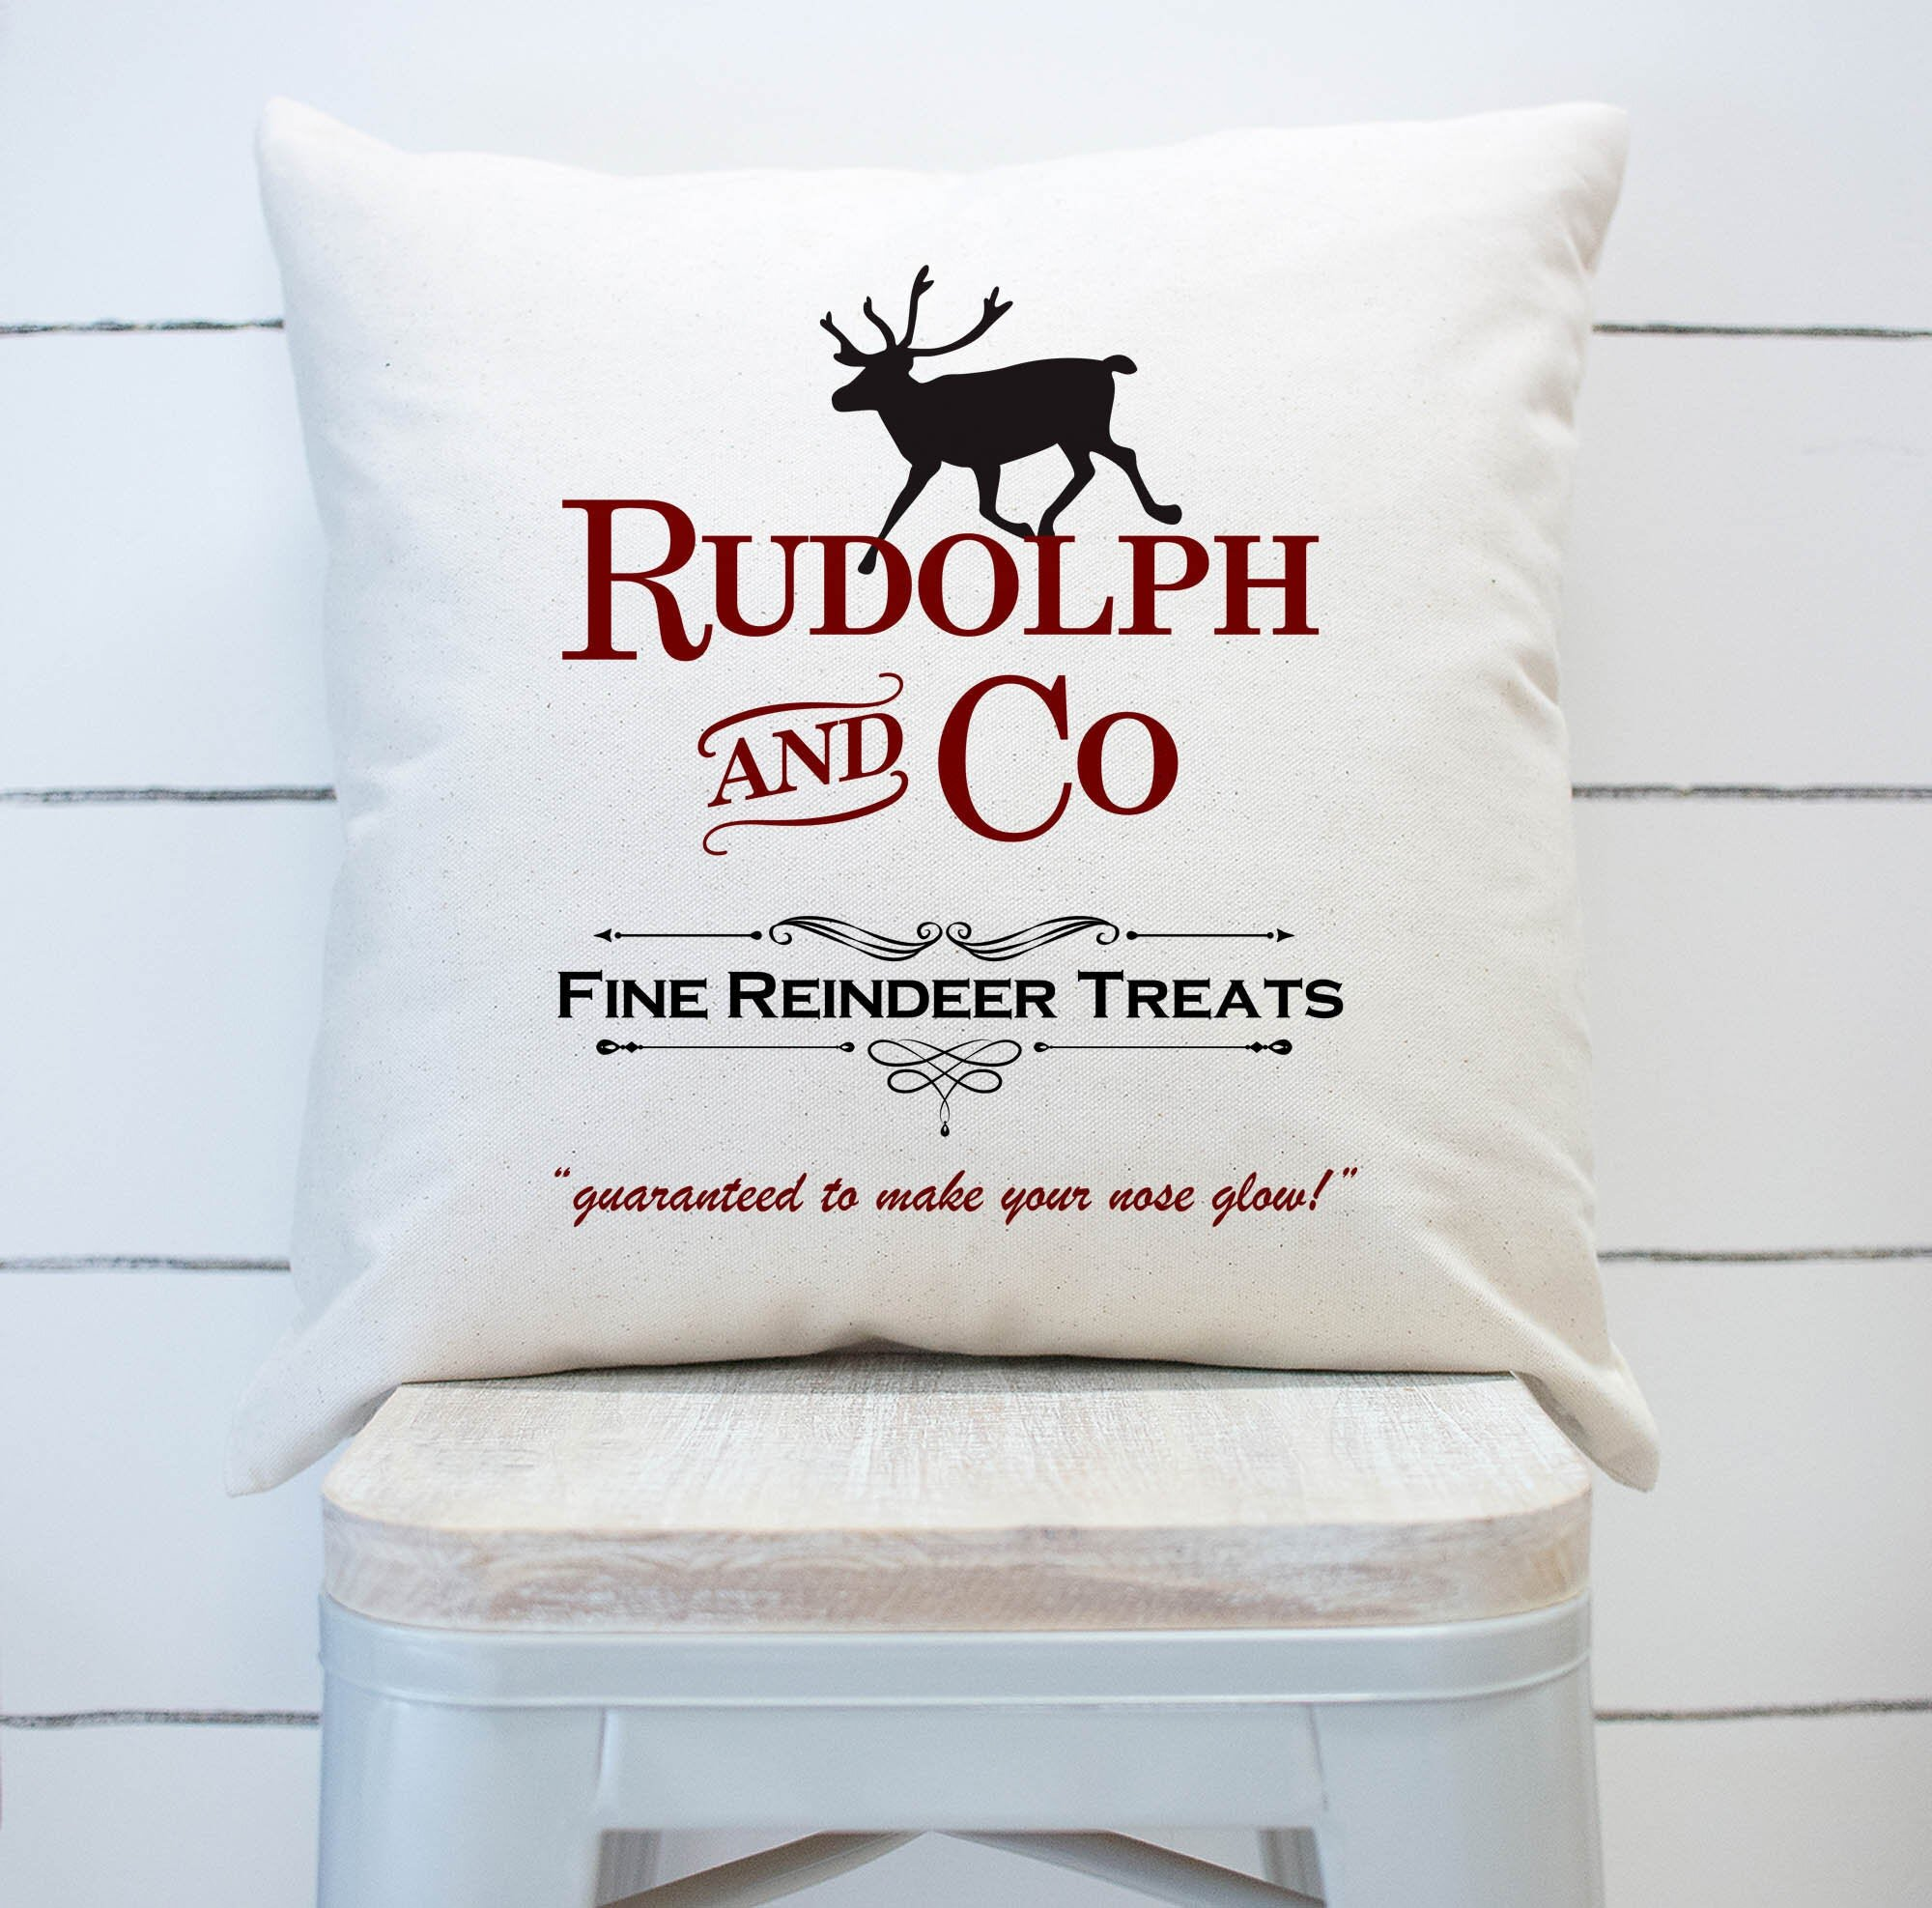 The Holiday Aisle Angier Rudolph And Co Christmas Square Pillow Cover Wayfair